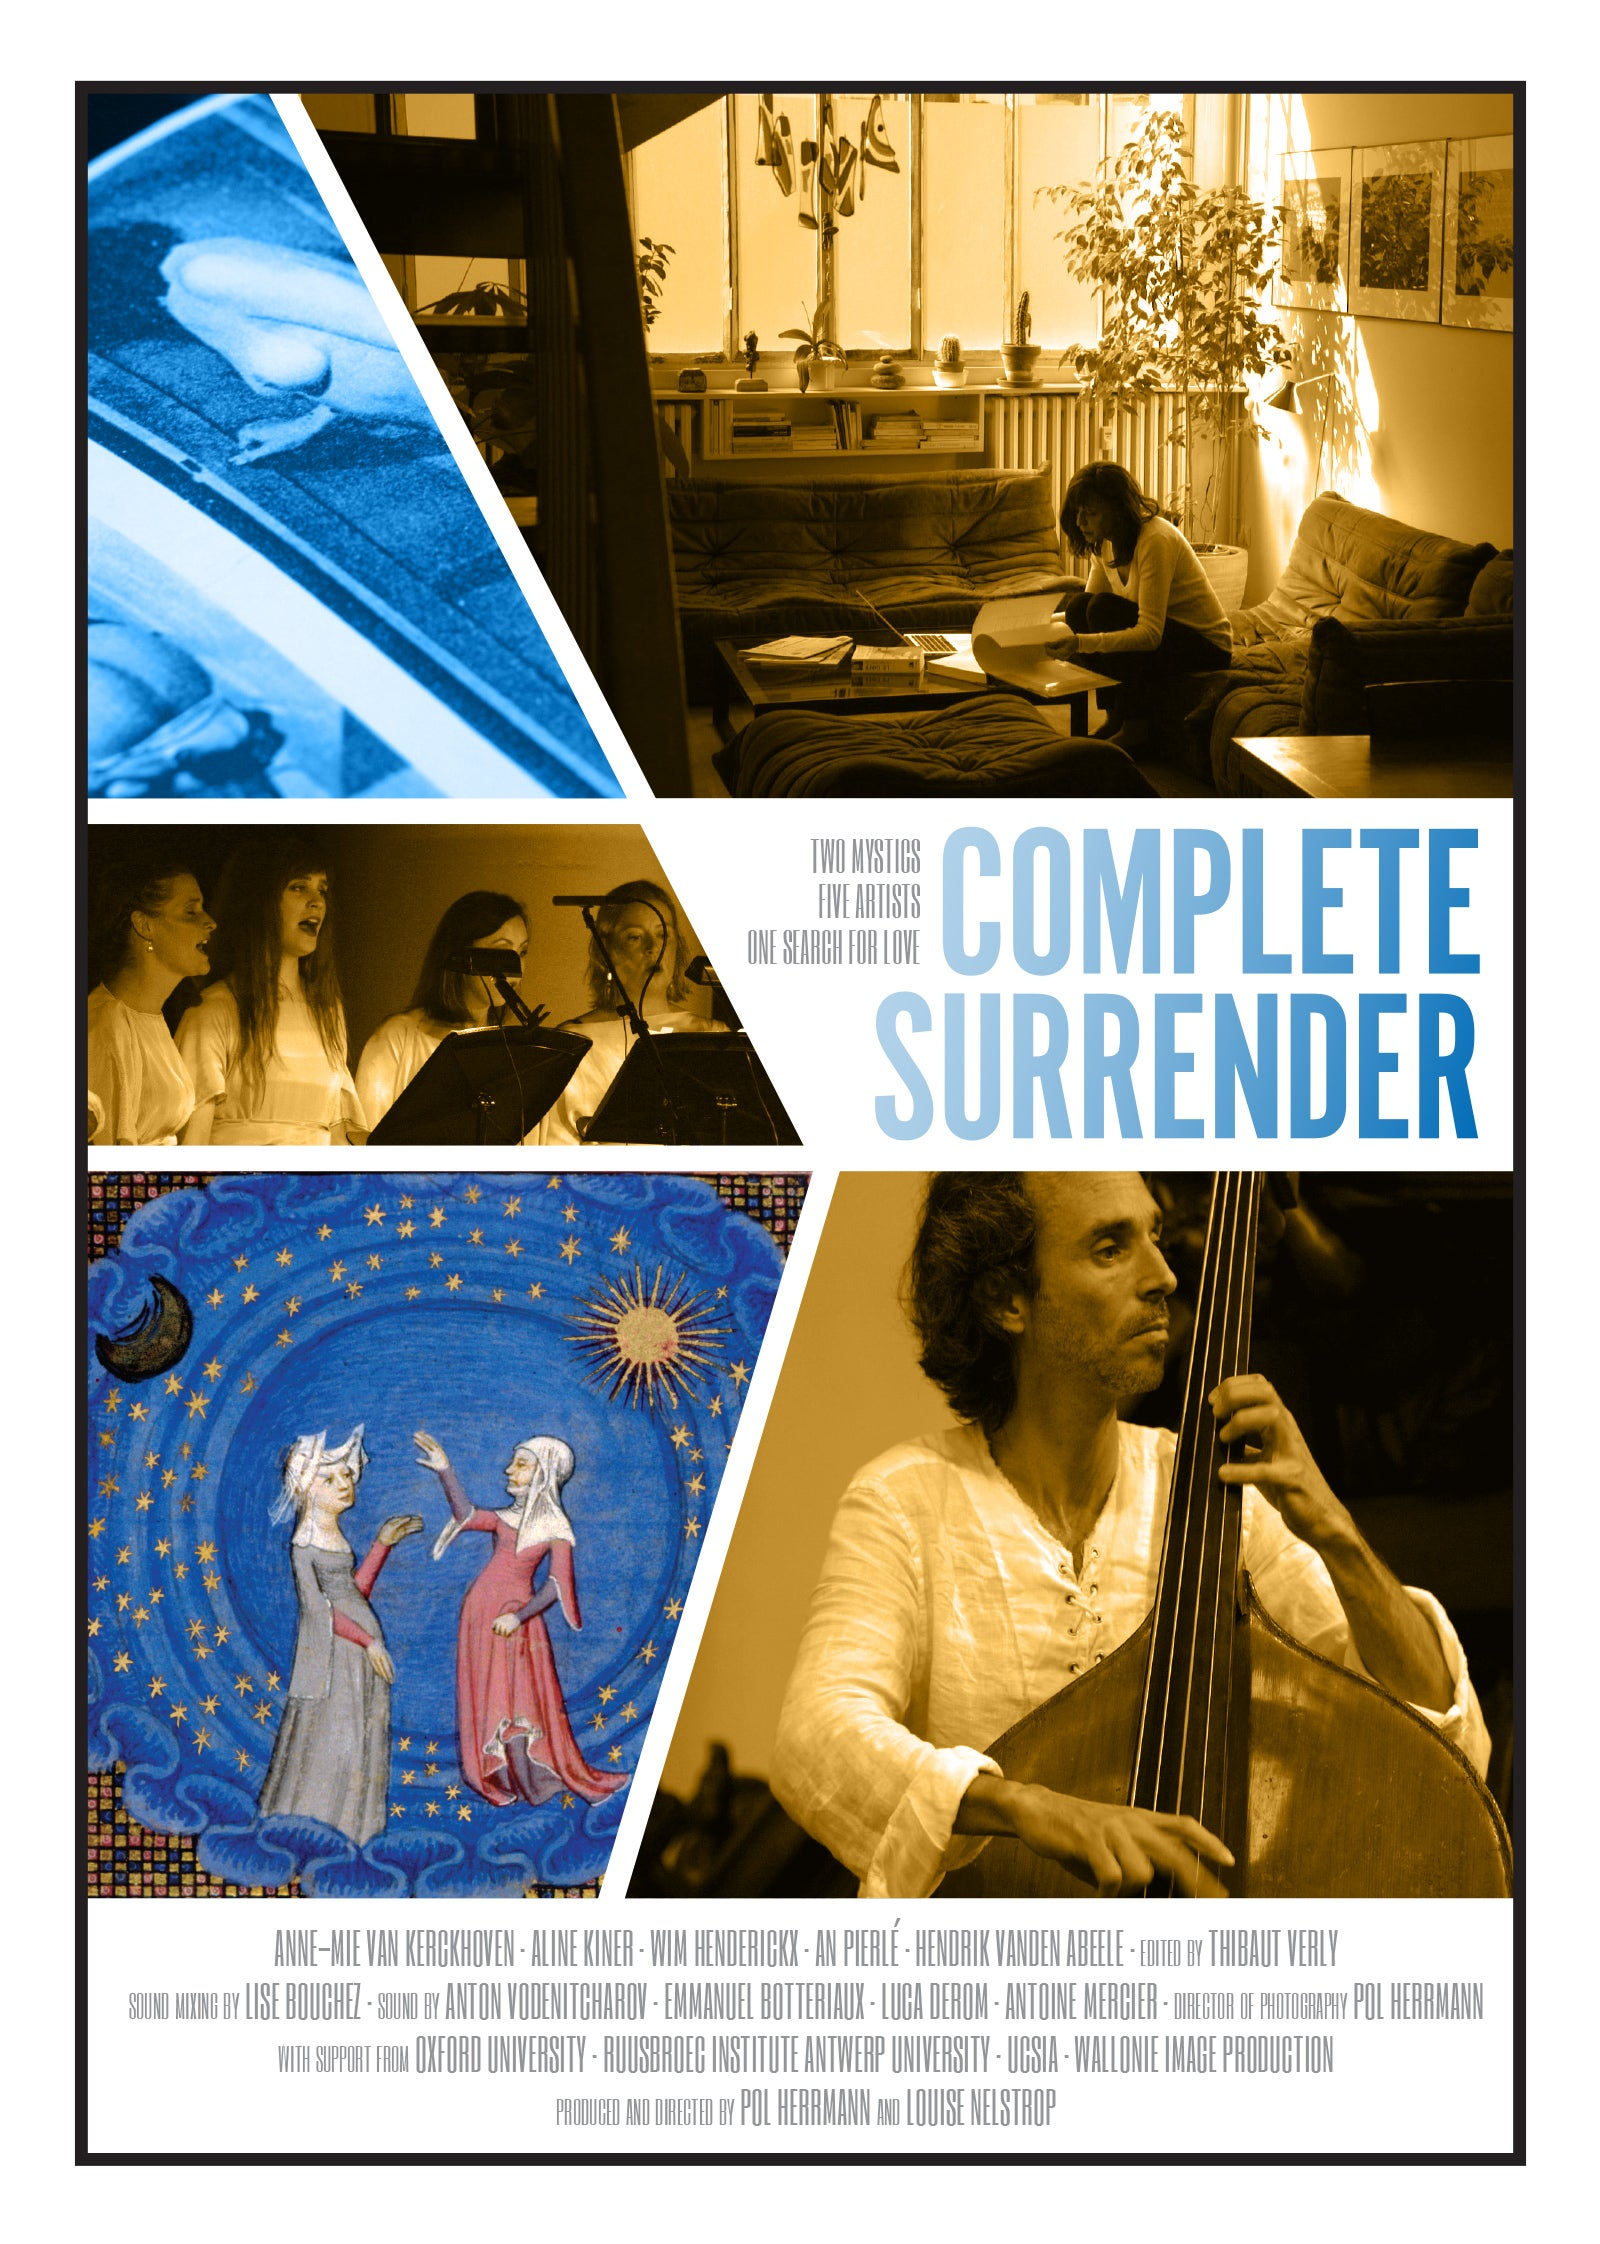 Complete Surrender Film Print - Credit: Katie Allen Design